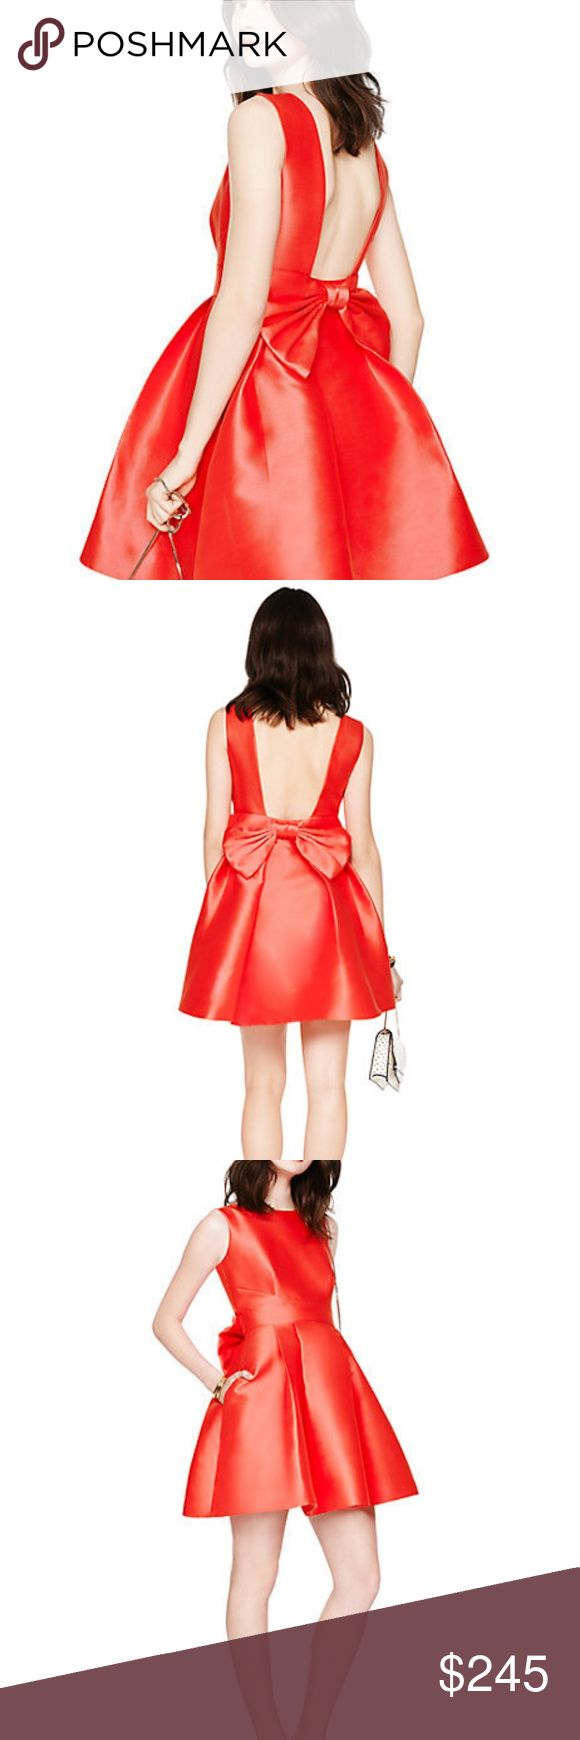 """Kate Spade - open back silk mini dress - NWT Brand new dress with tags - never worn. Still available on Kate Spade site.  FEATURES 89% polyester 11% silk / lining: 100% polyester bow back pleating all around side seam pockets full circle skirt with pleats full circle skirt with pleats size 4 measures 35"""" from highest shoulder point style # oumu0506 kate spade Dresses Mini"""